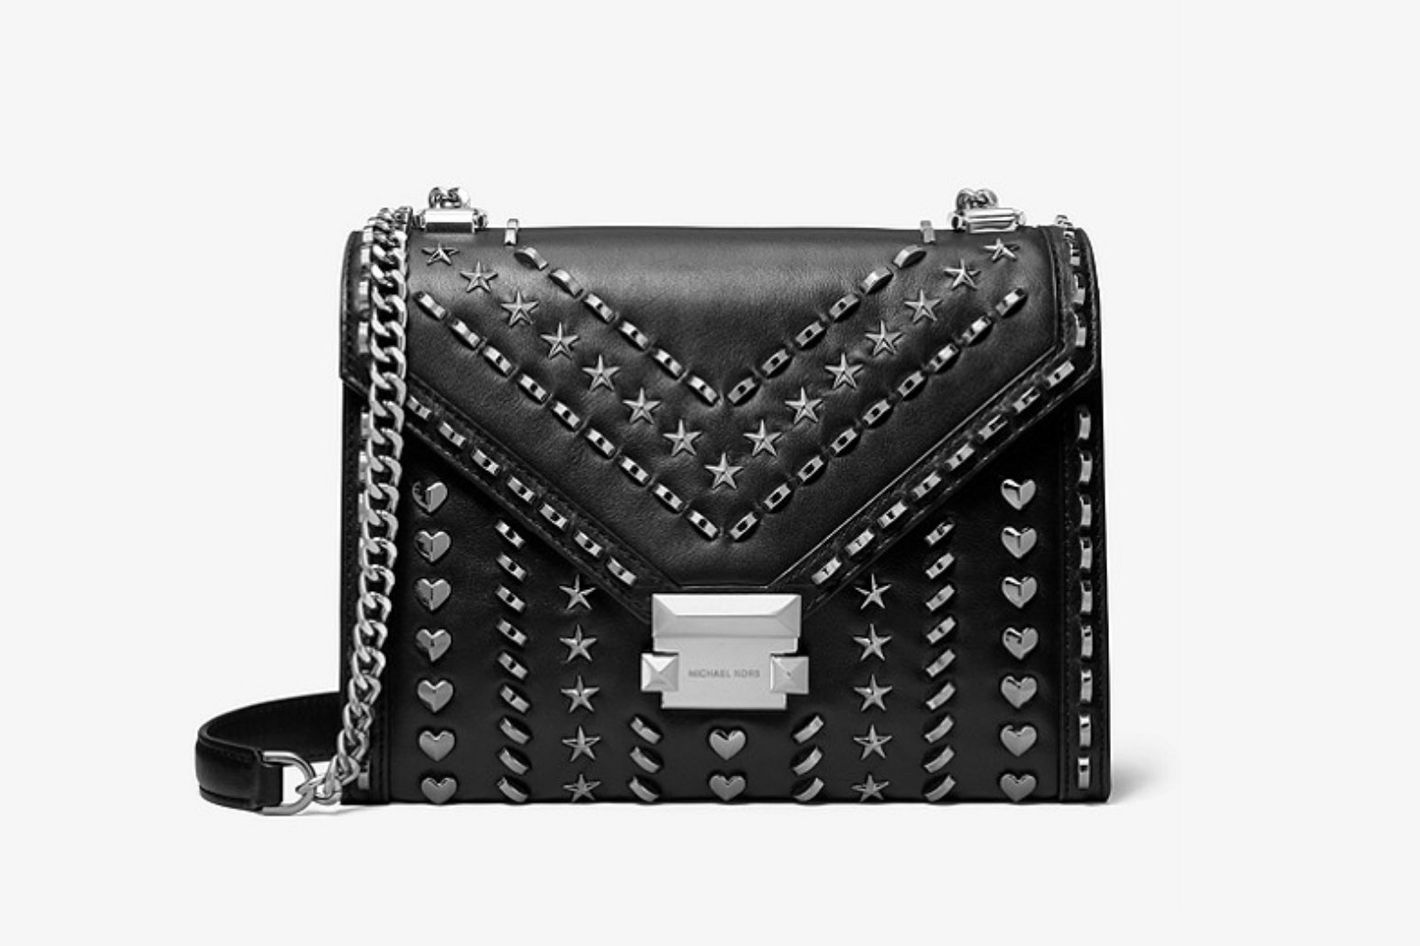 Michael Kors X Yang Mi Whitney Large Studded Leather Convertible Shoulder Bag